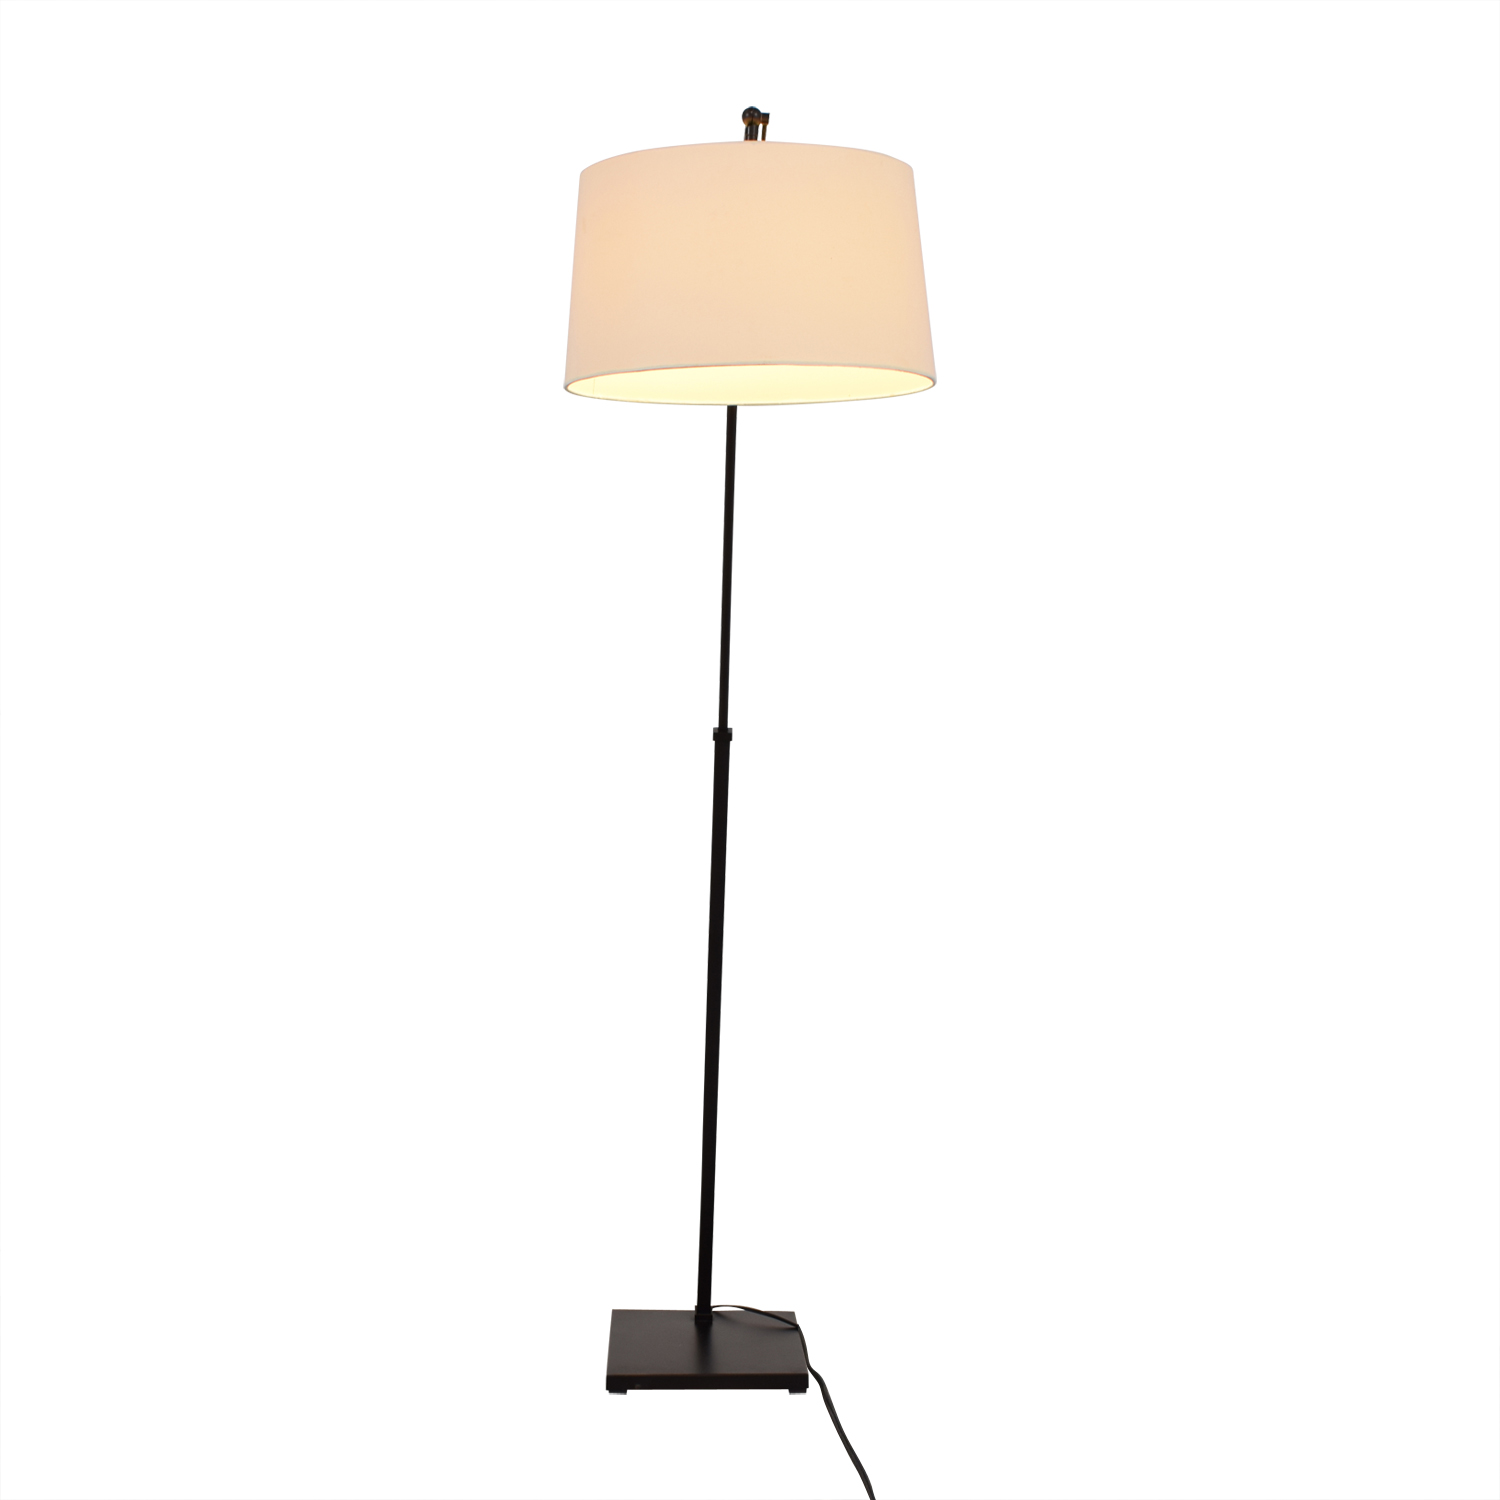 Crate & Barrel Crate & Barrel Dexter Arc Floor Lamp with White Shade for sale